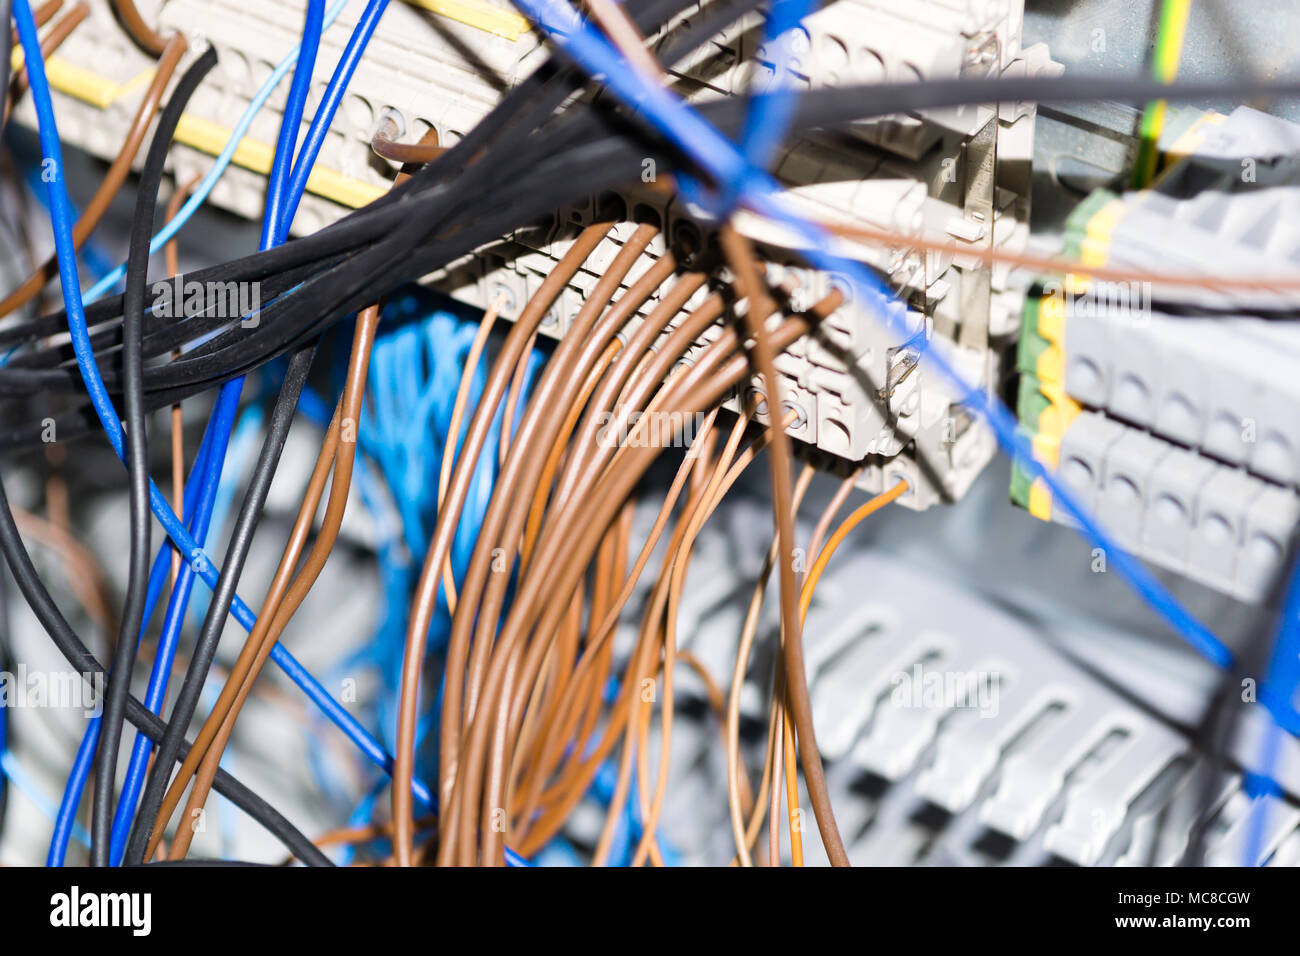 Electrical Equipment Components Installation In Fuse Box Wiring And Home Connections